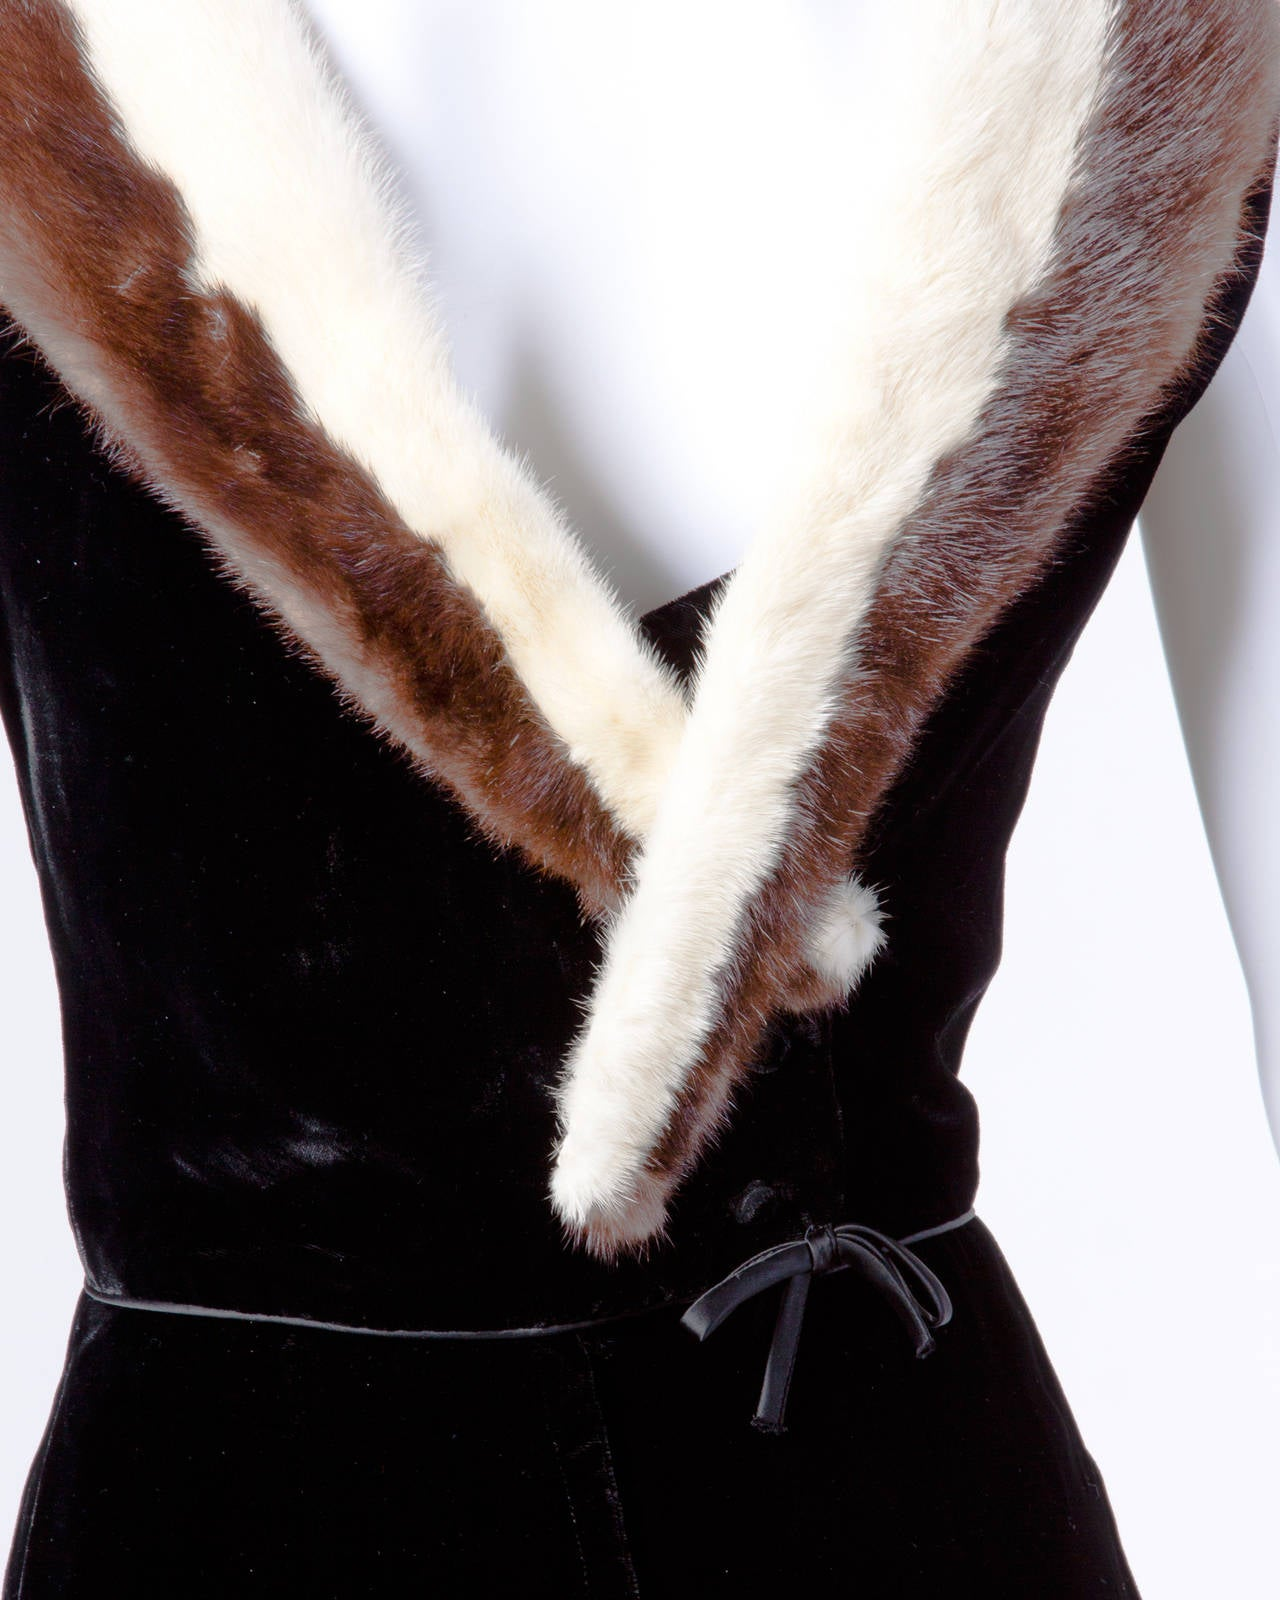 Vintage 1960s 60s Black Velvet Sheath Dress with Mink Fur Trim 4